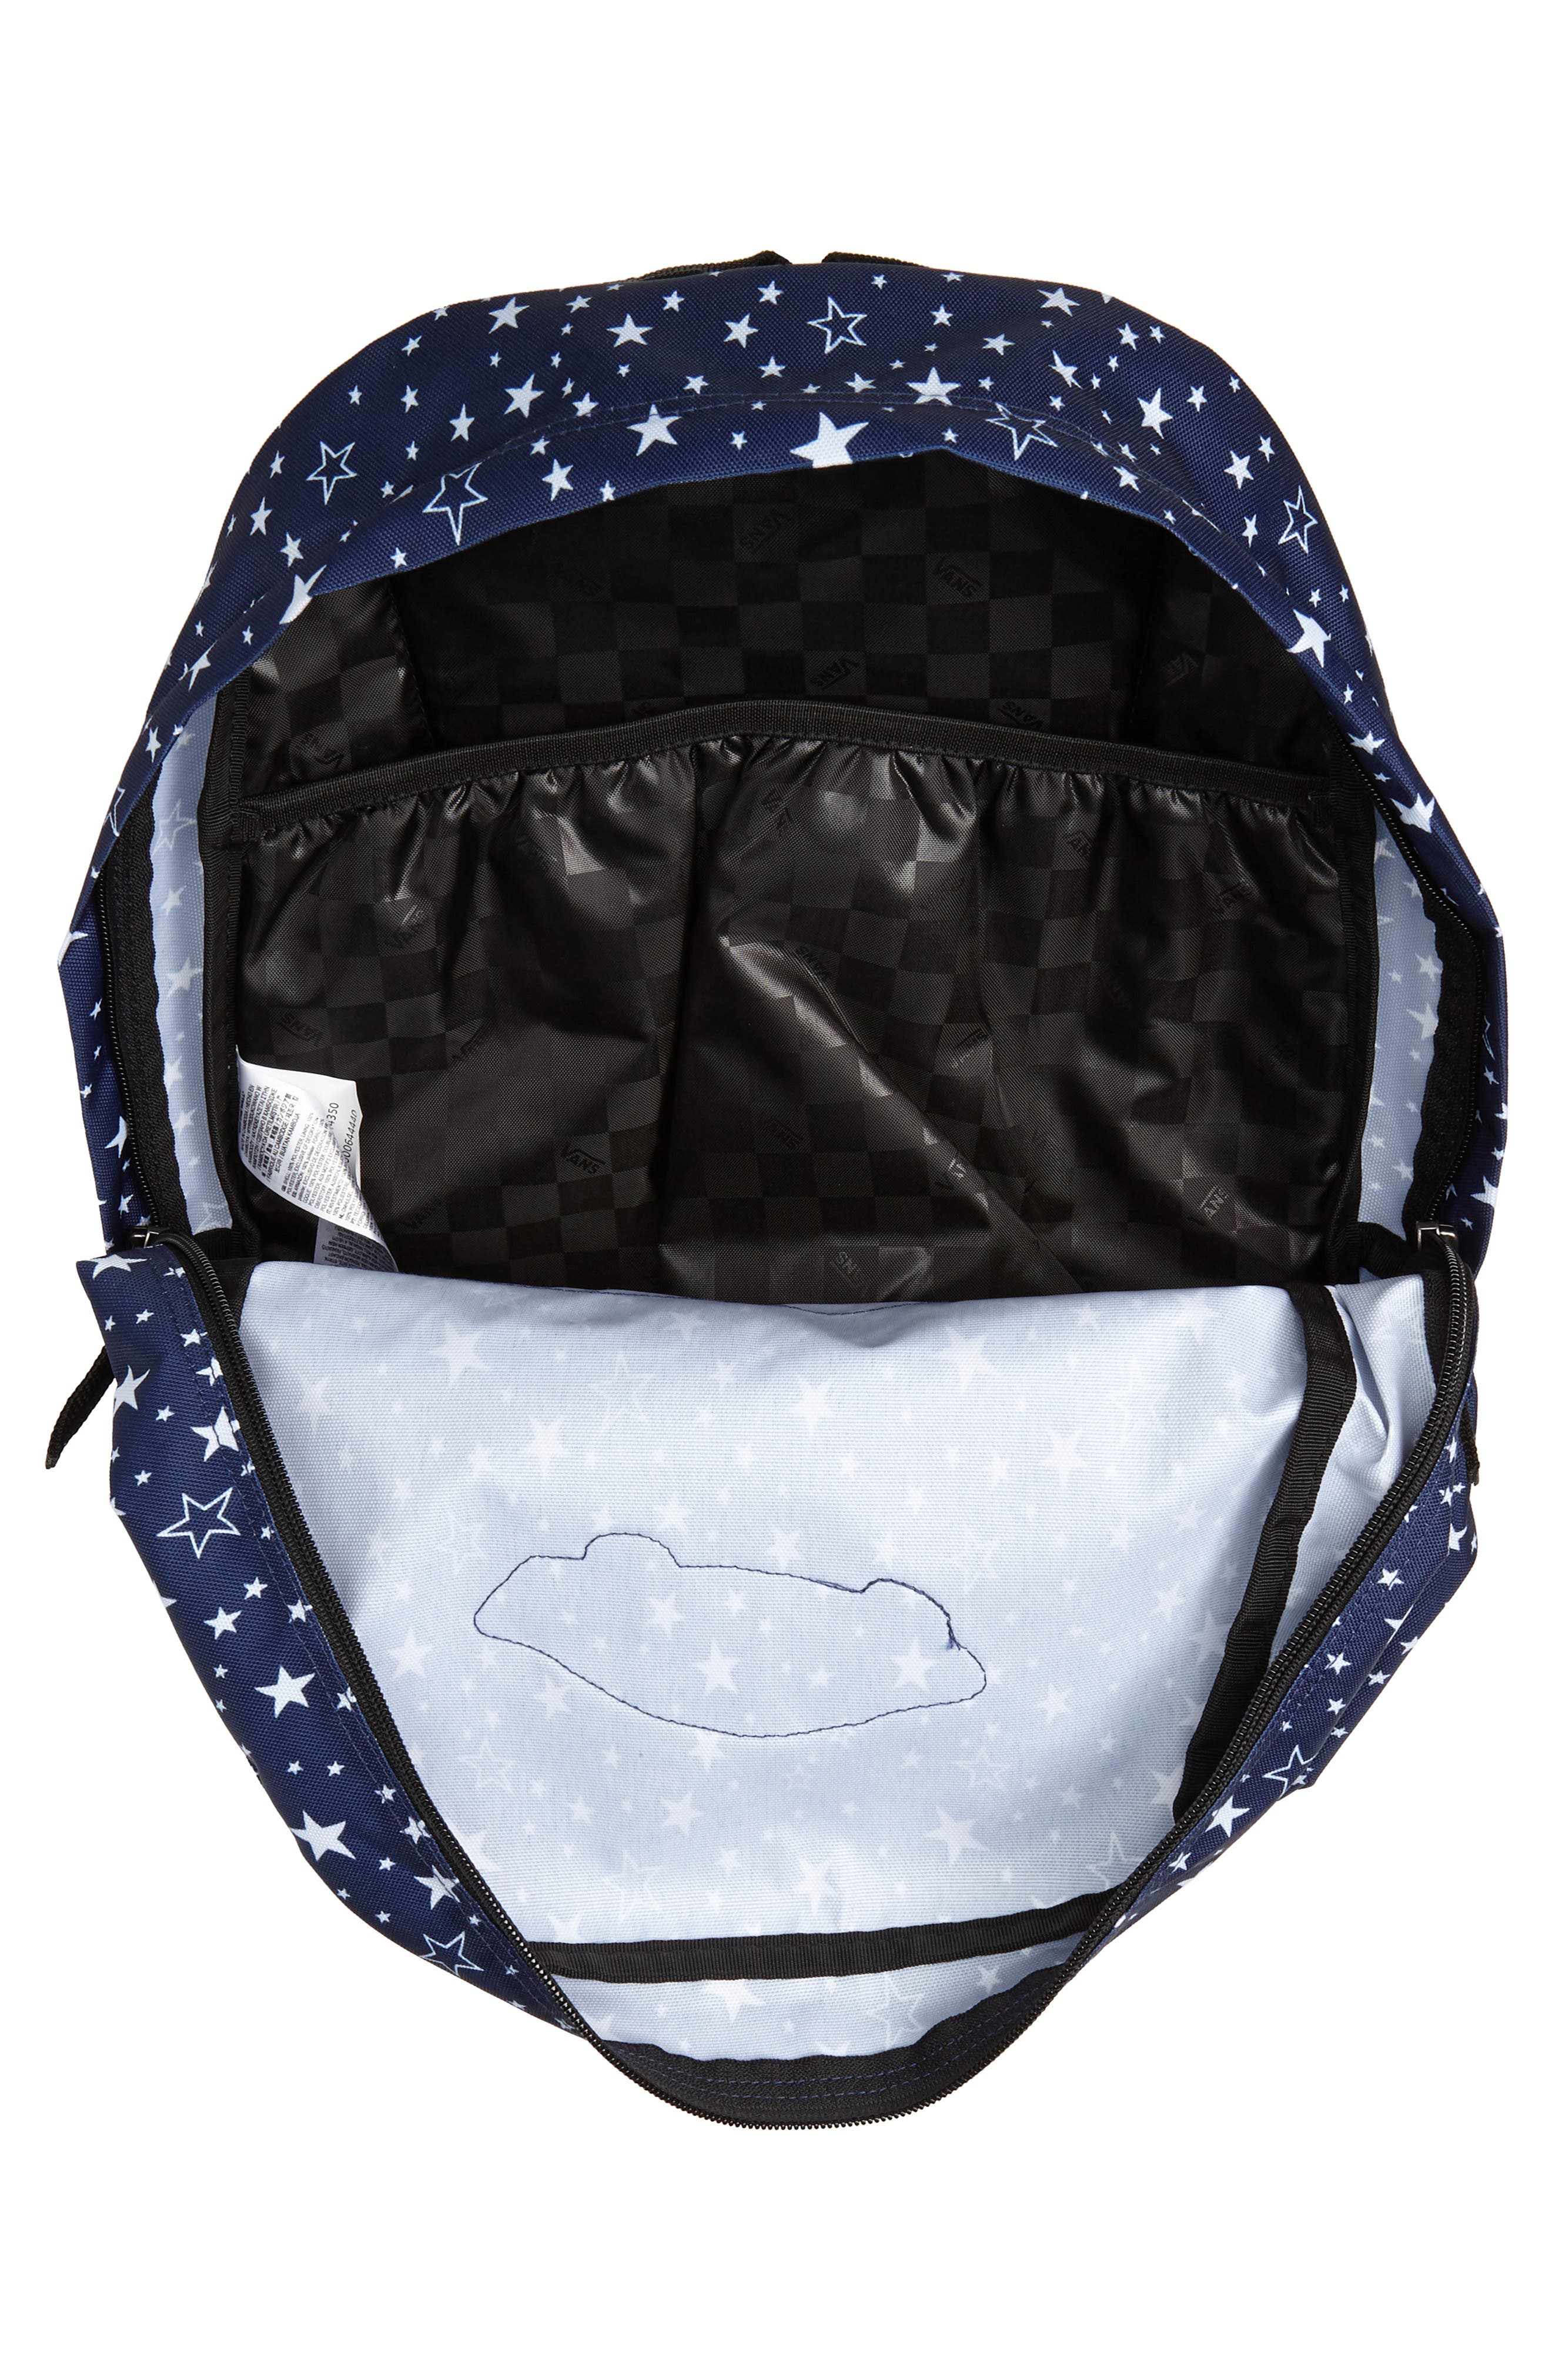 Realm Backpack,                             Alternate thumbnail 4, color,                             MEDIEVAL BLUE STAR